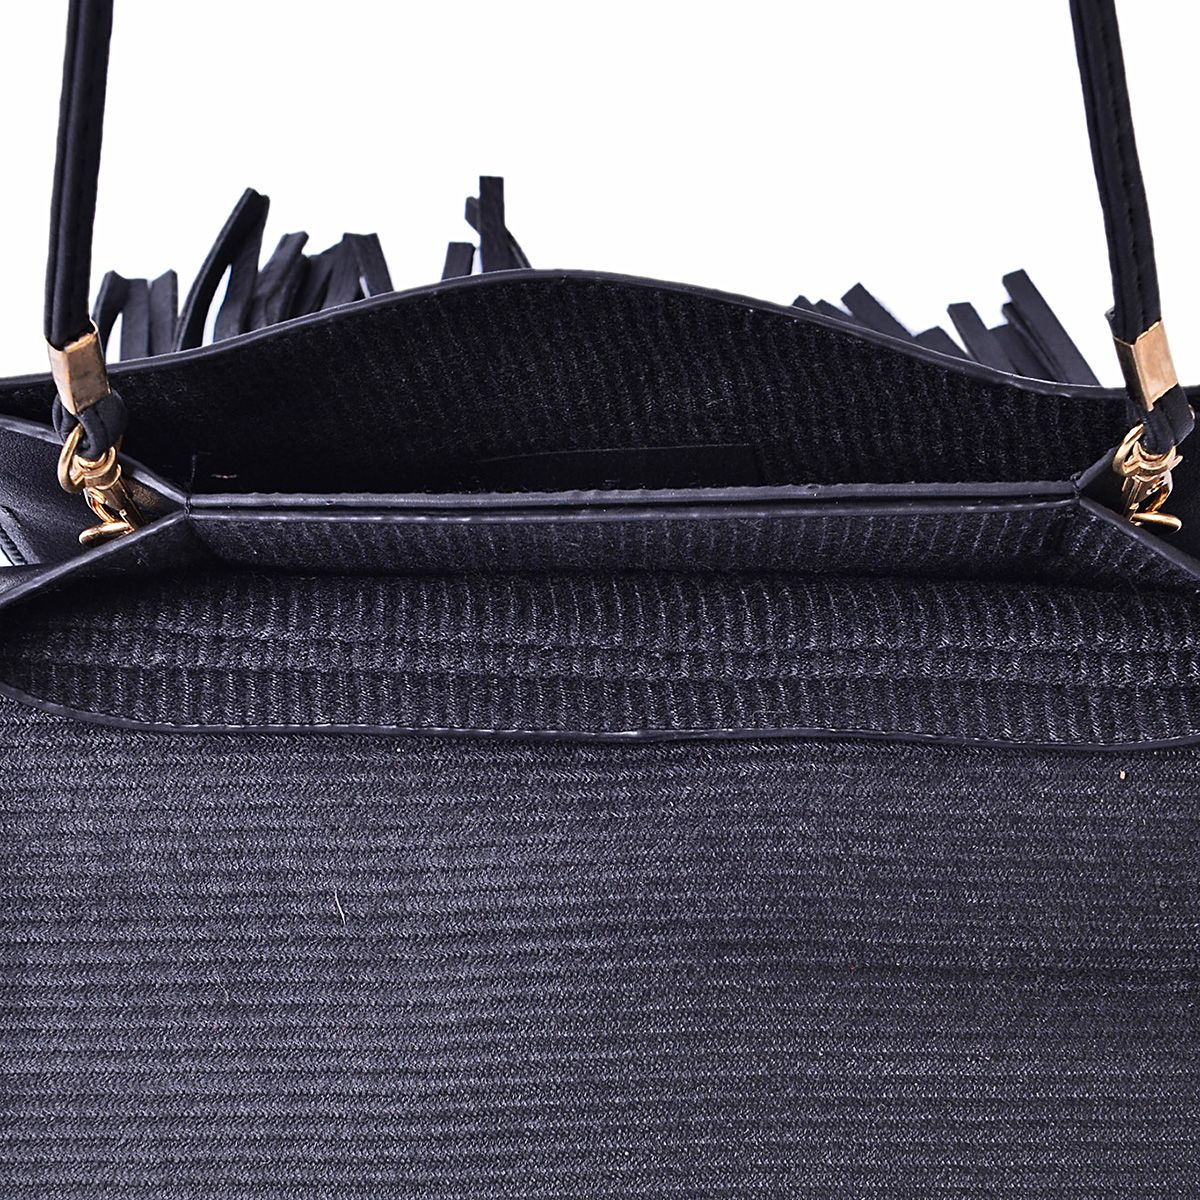 J Francis - Openwork Black Faux Leather Flap Over Crossbody Bag With Fringe (8x5.5 in)